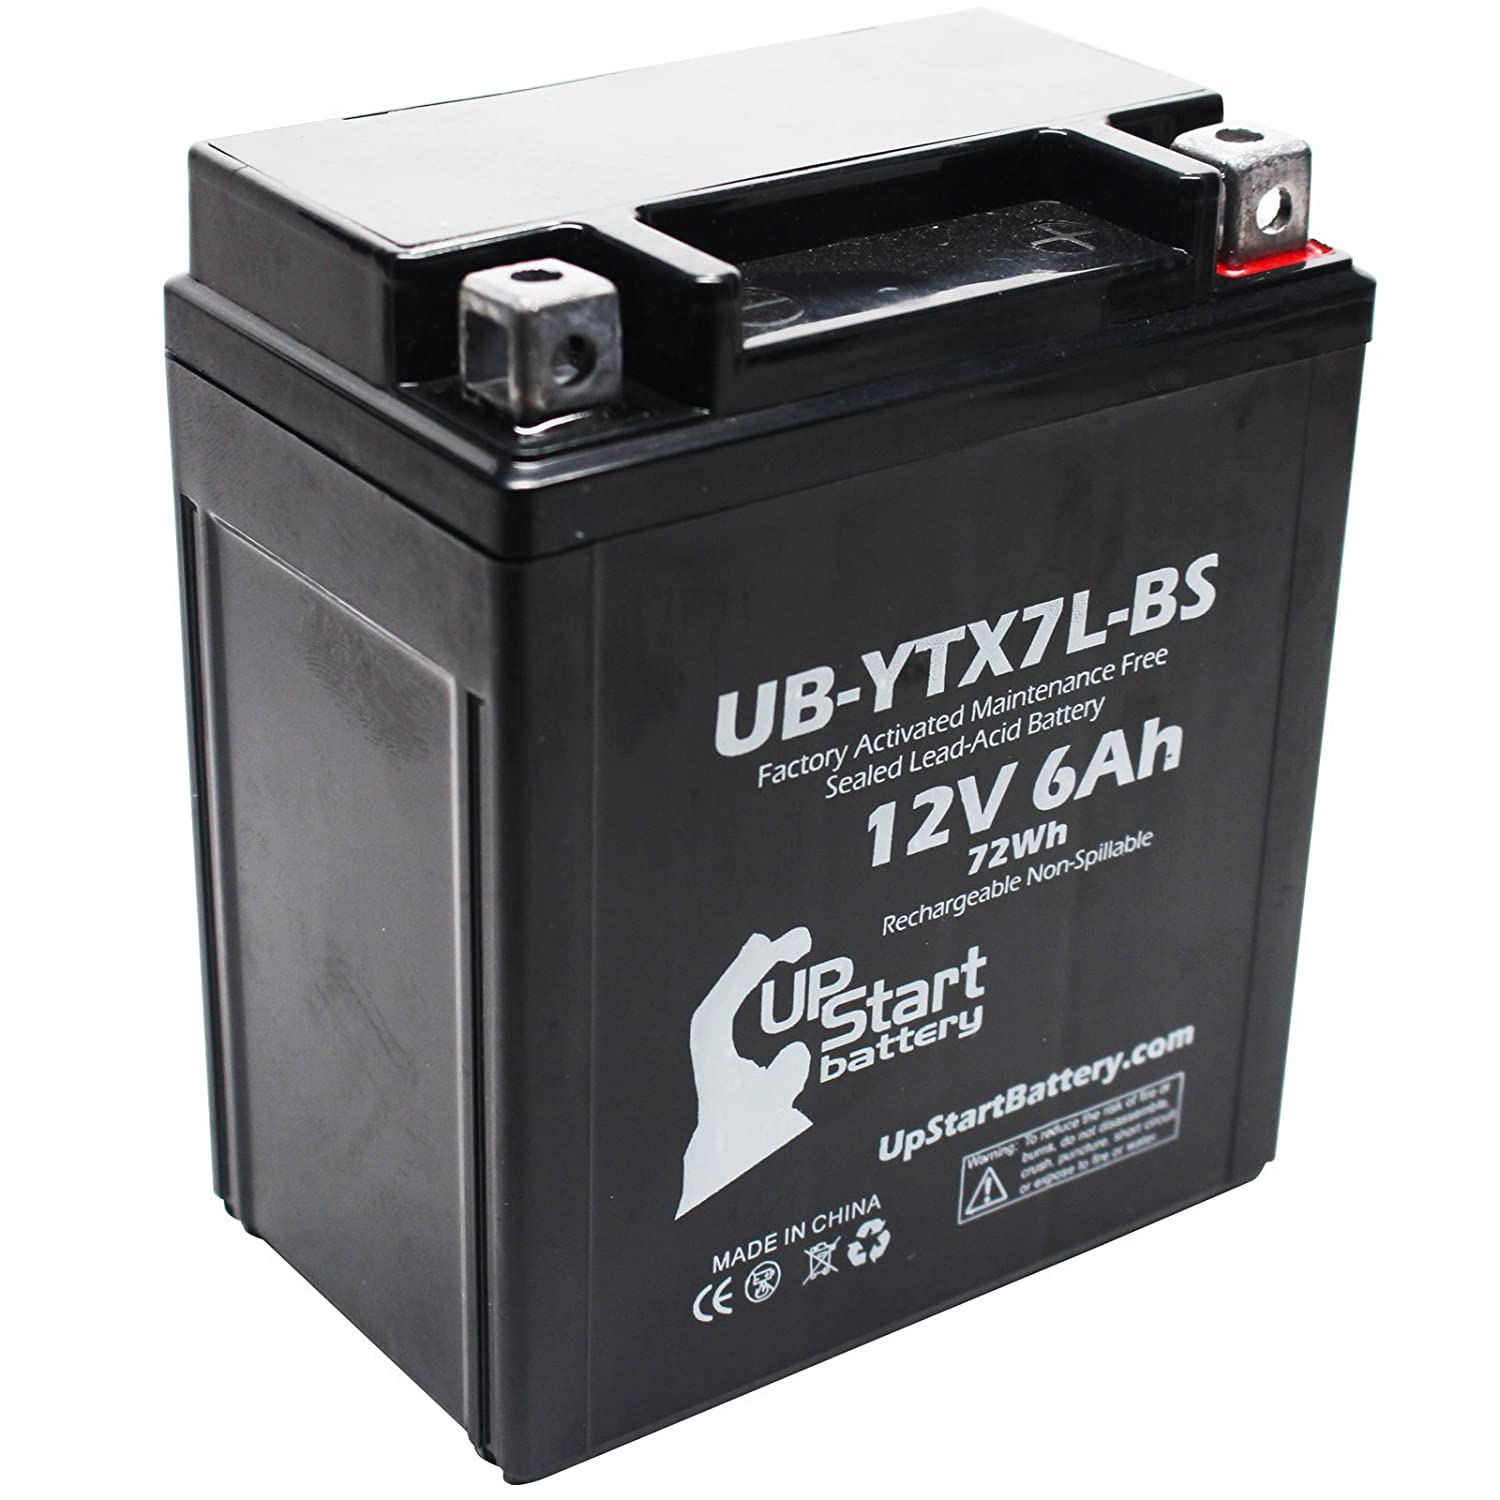 UB-YTX7L-BS Replacement 2008 Honda CMX250C Rebel 250CC Factory Activated 6Ah Motorcycle Battery Maintenance Free 12V